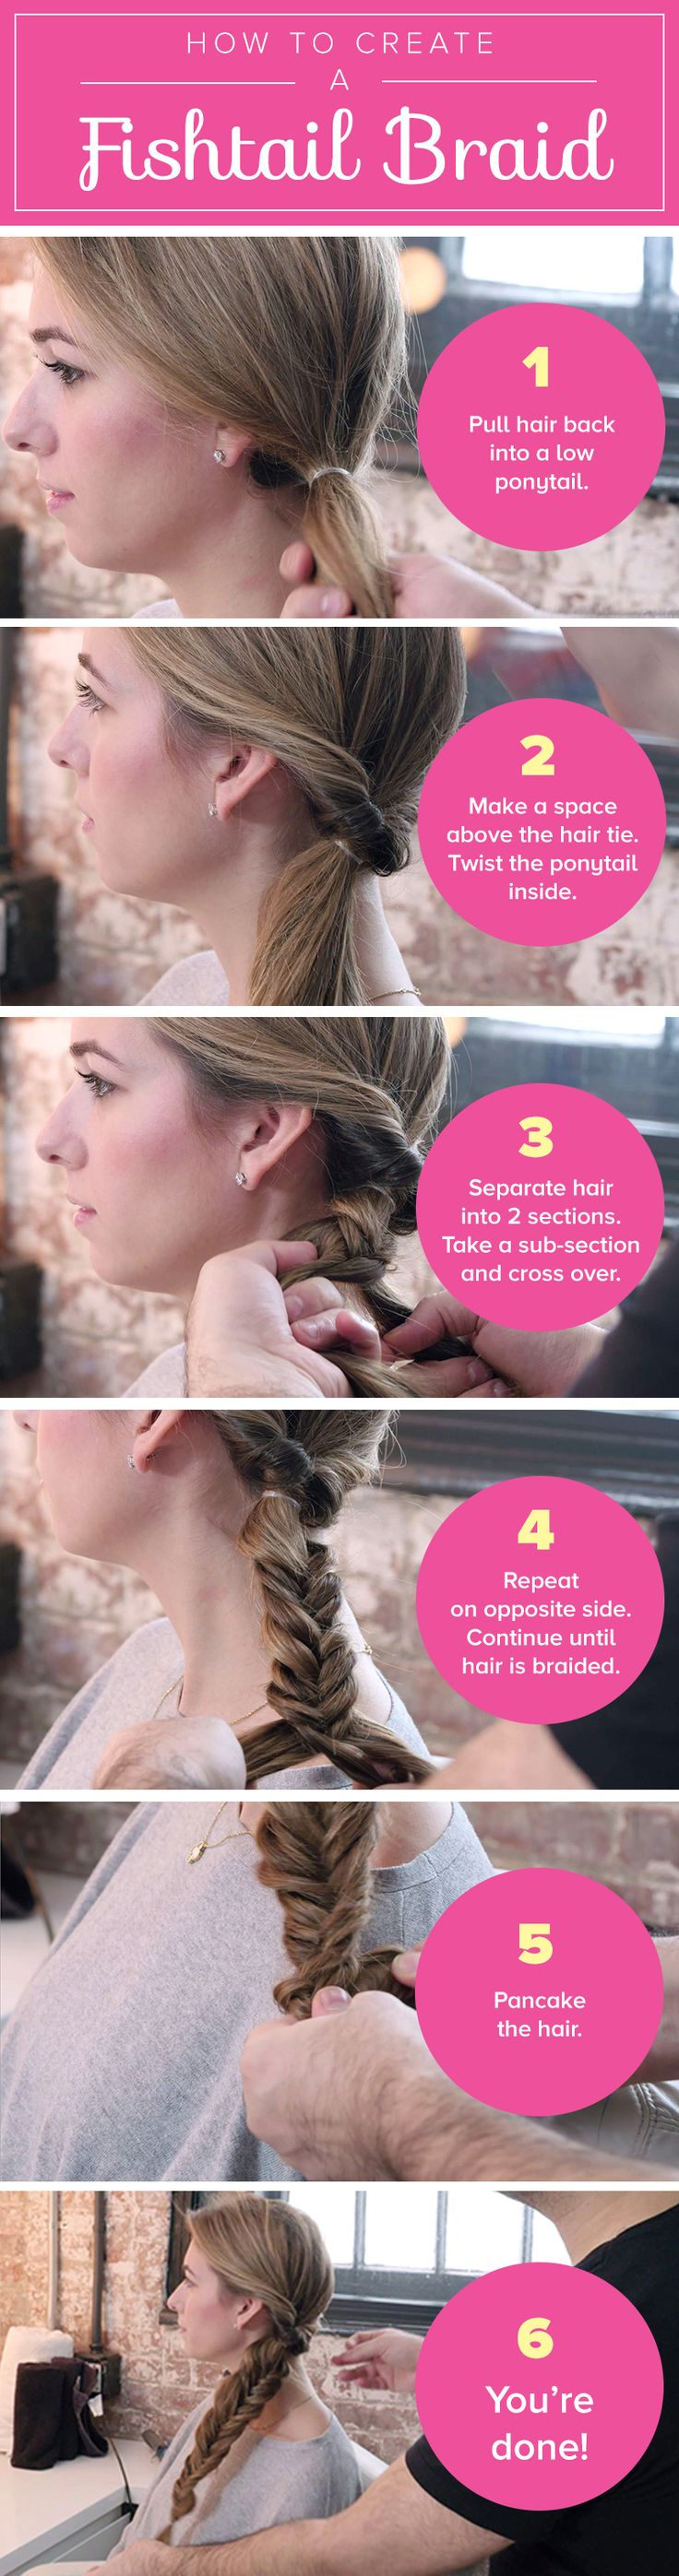 Up your style in five easy steps with this romantic fishtail braid.